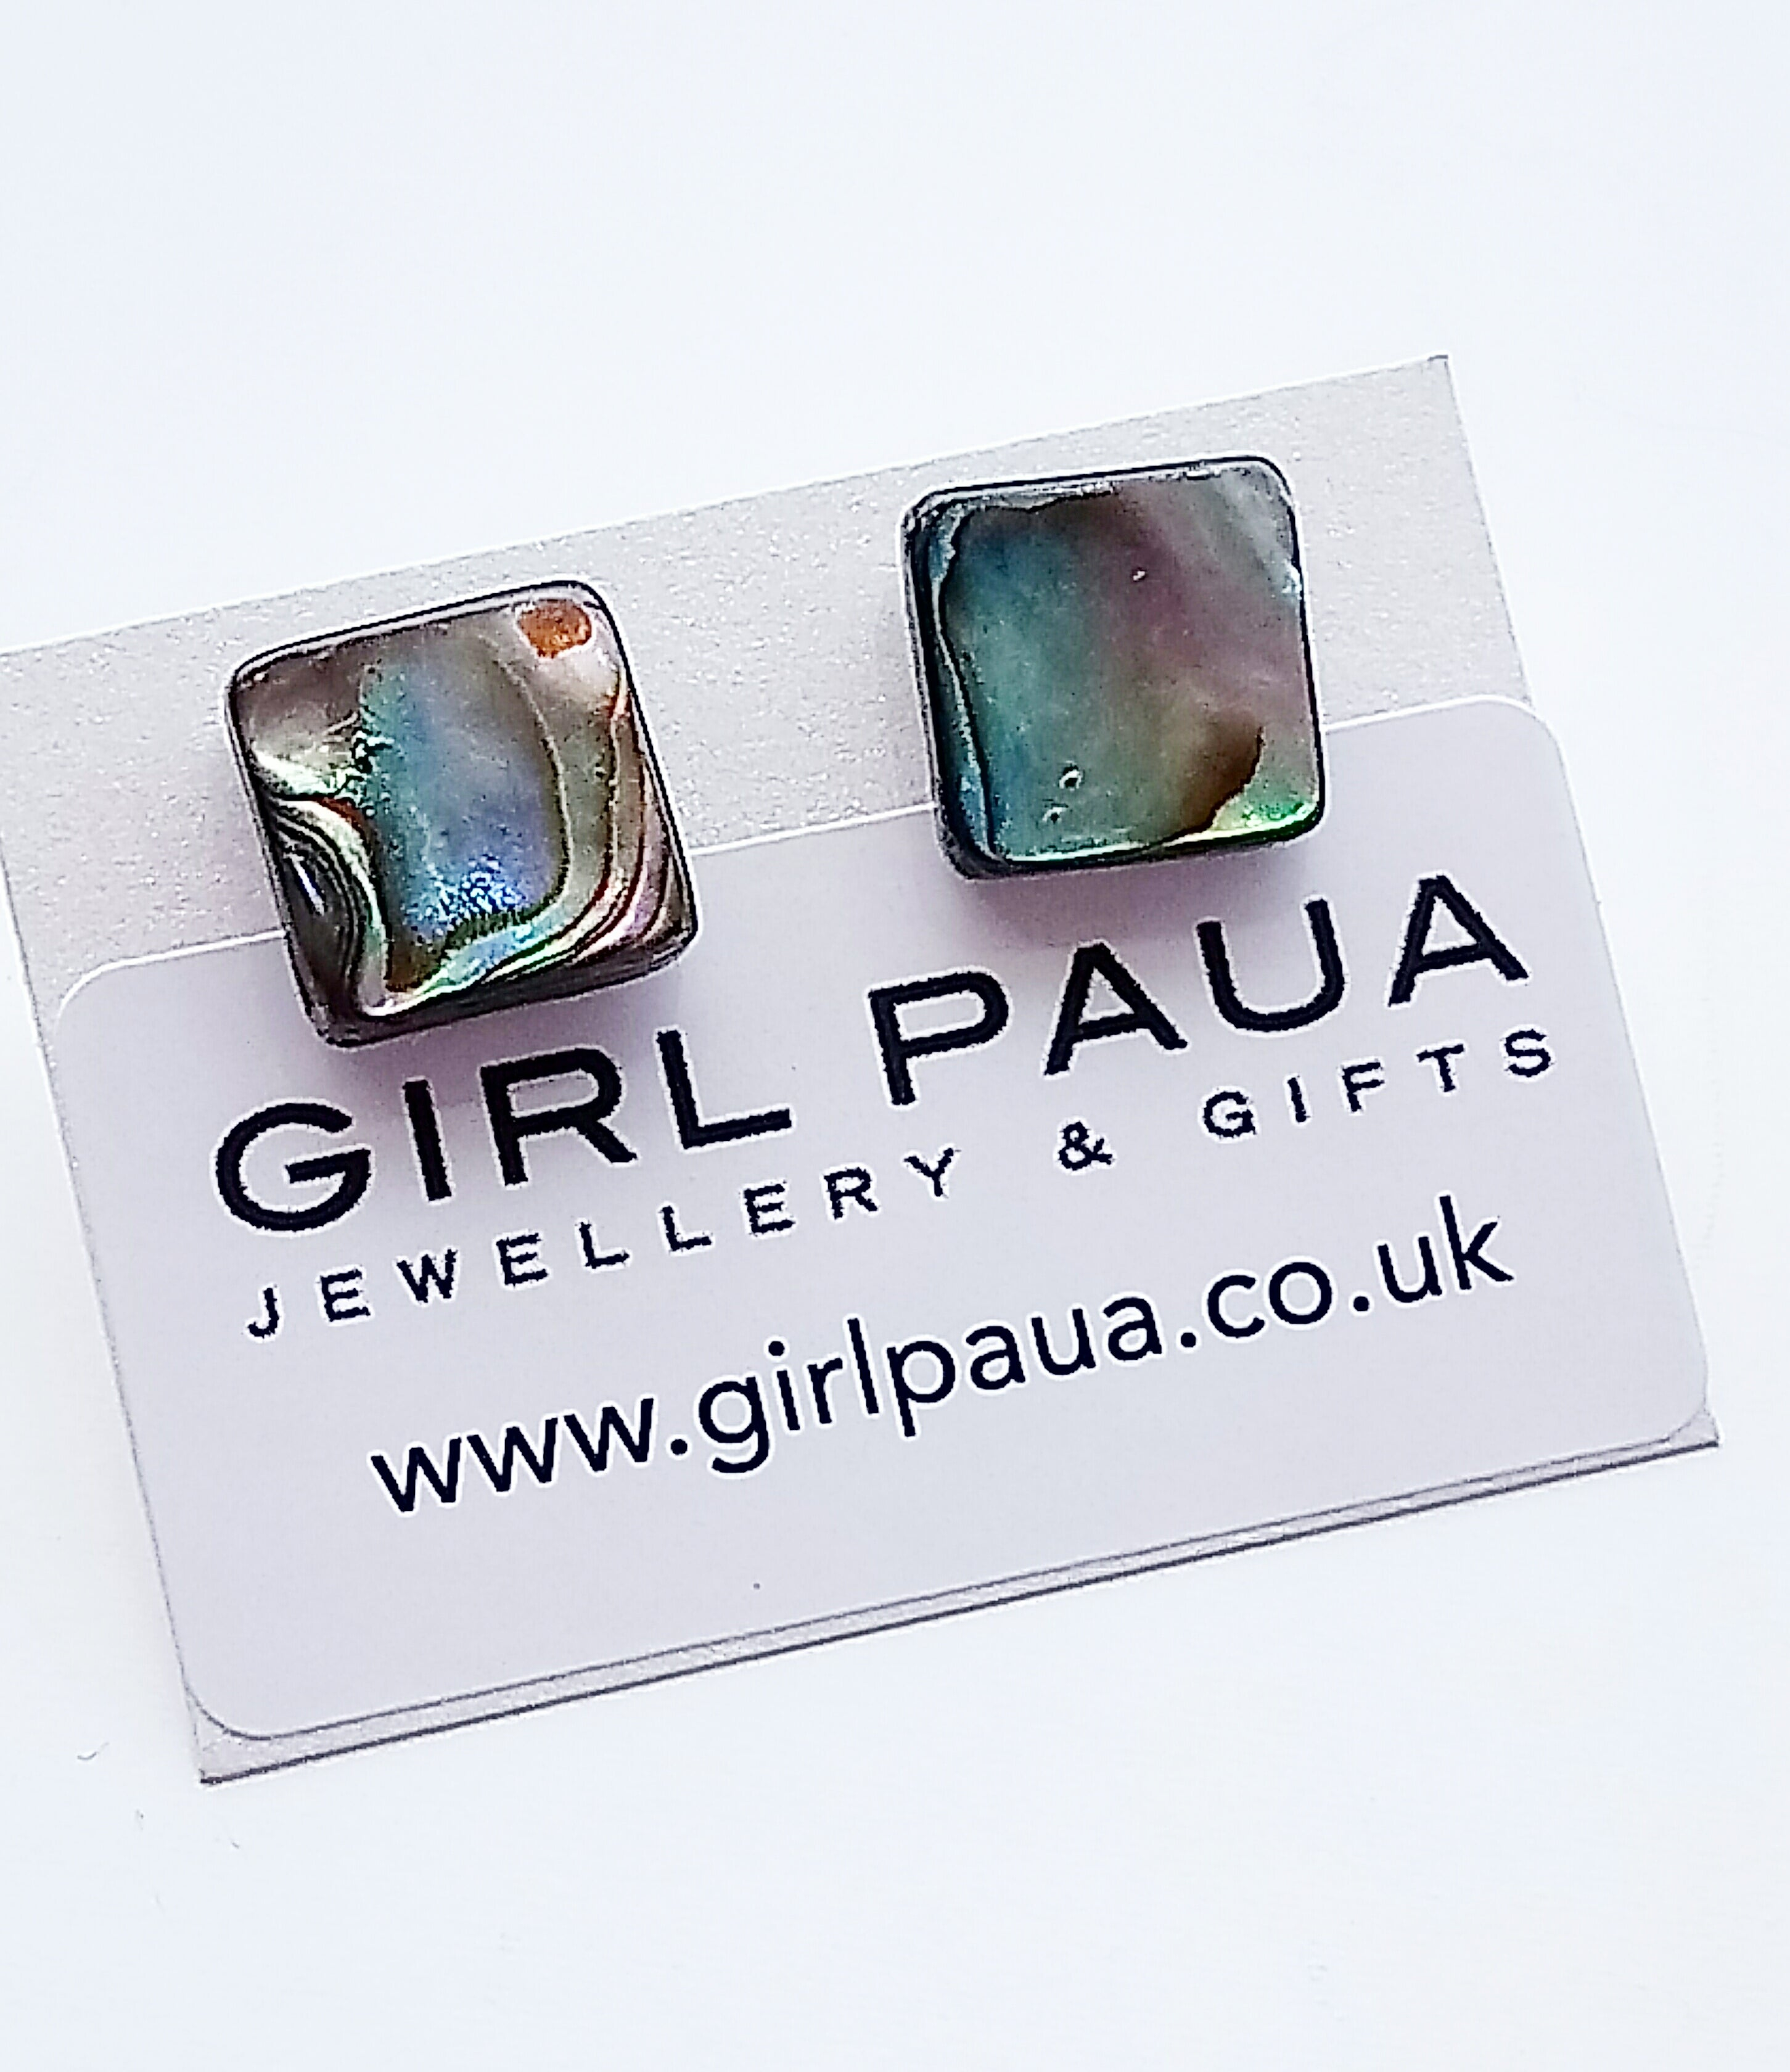 Paua Bead PE04 £16 Stud Earrings Made by Girl Paua